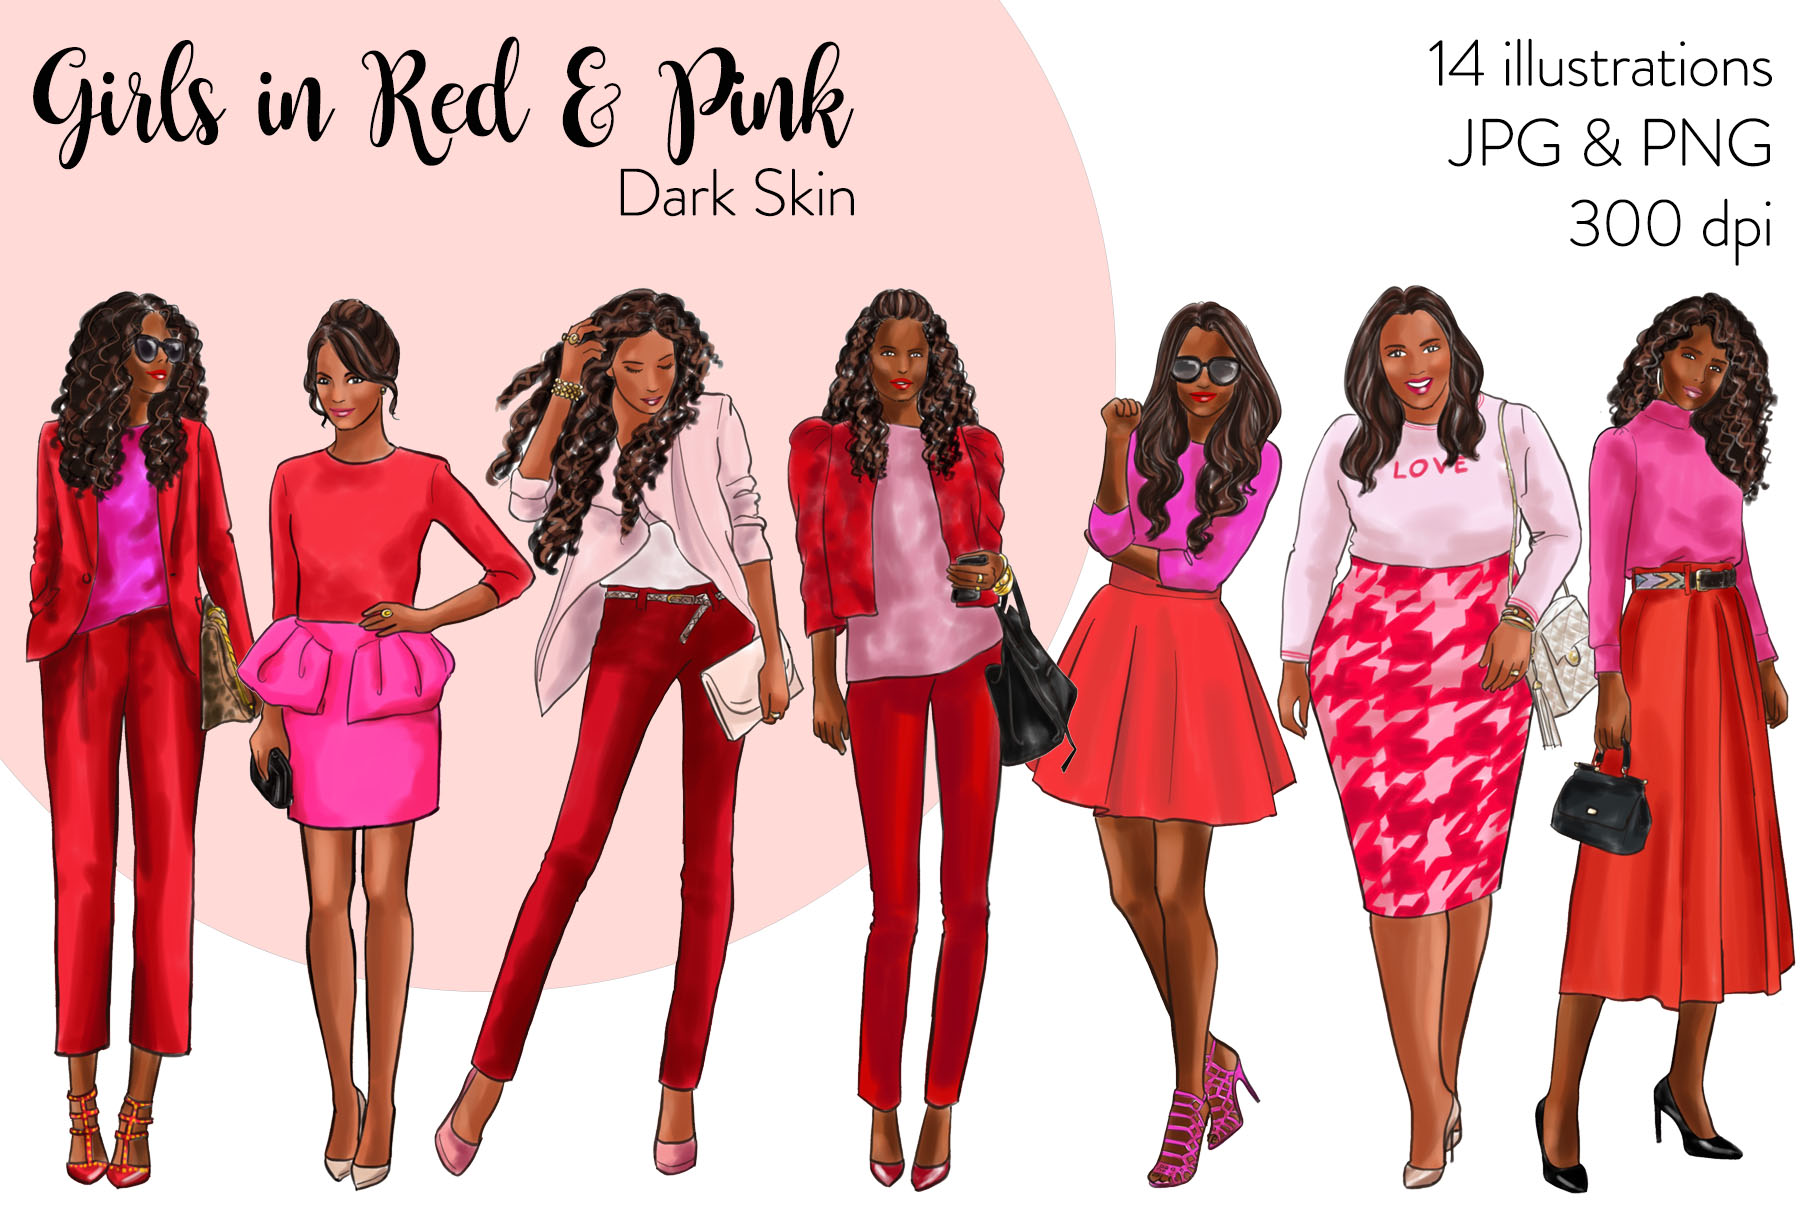 Fashion illustration clipart-Girls in Red and Pink-Dark skin example image 1